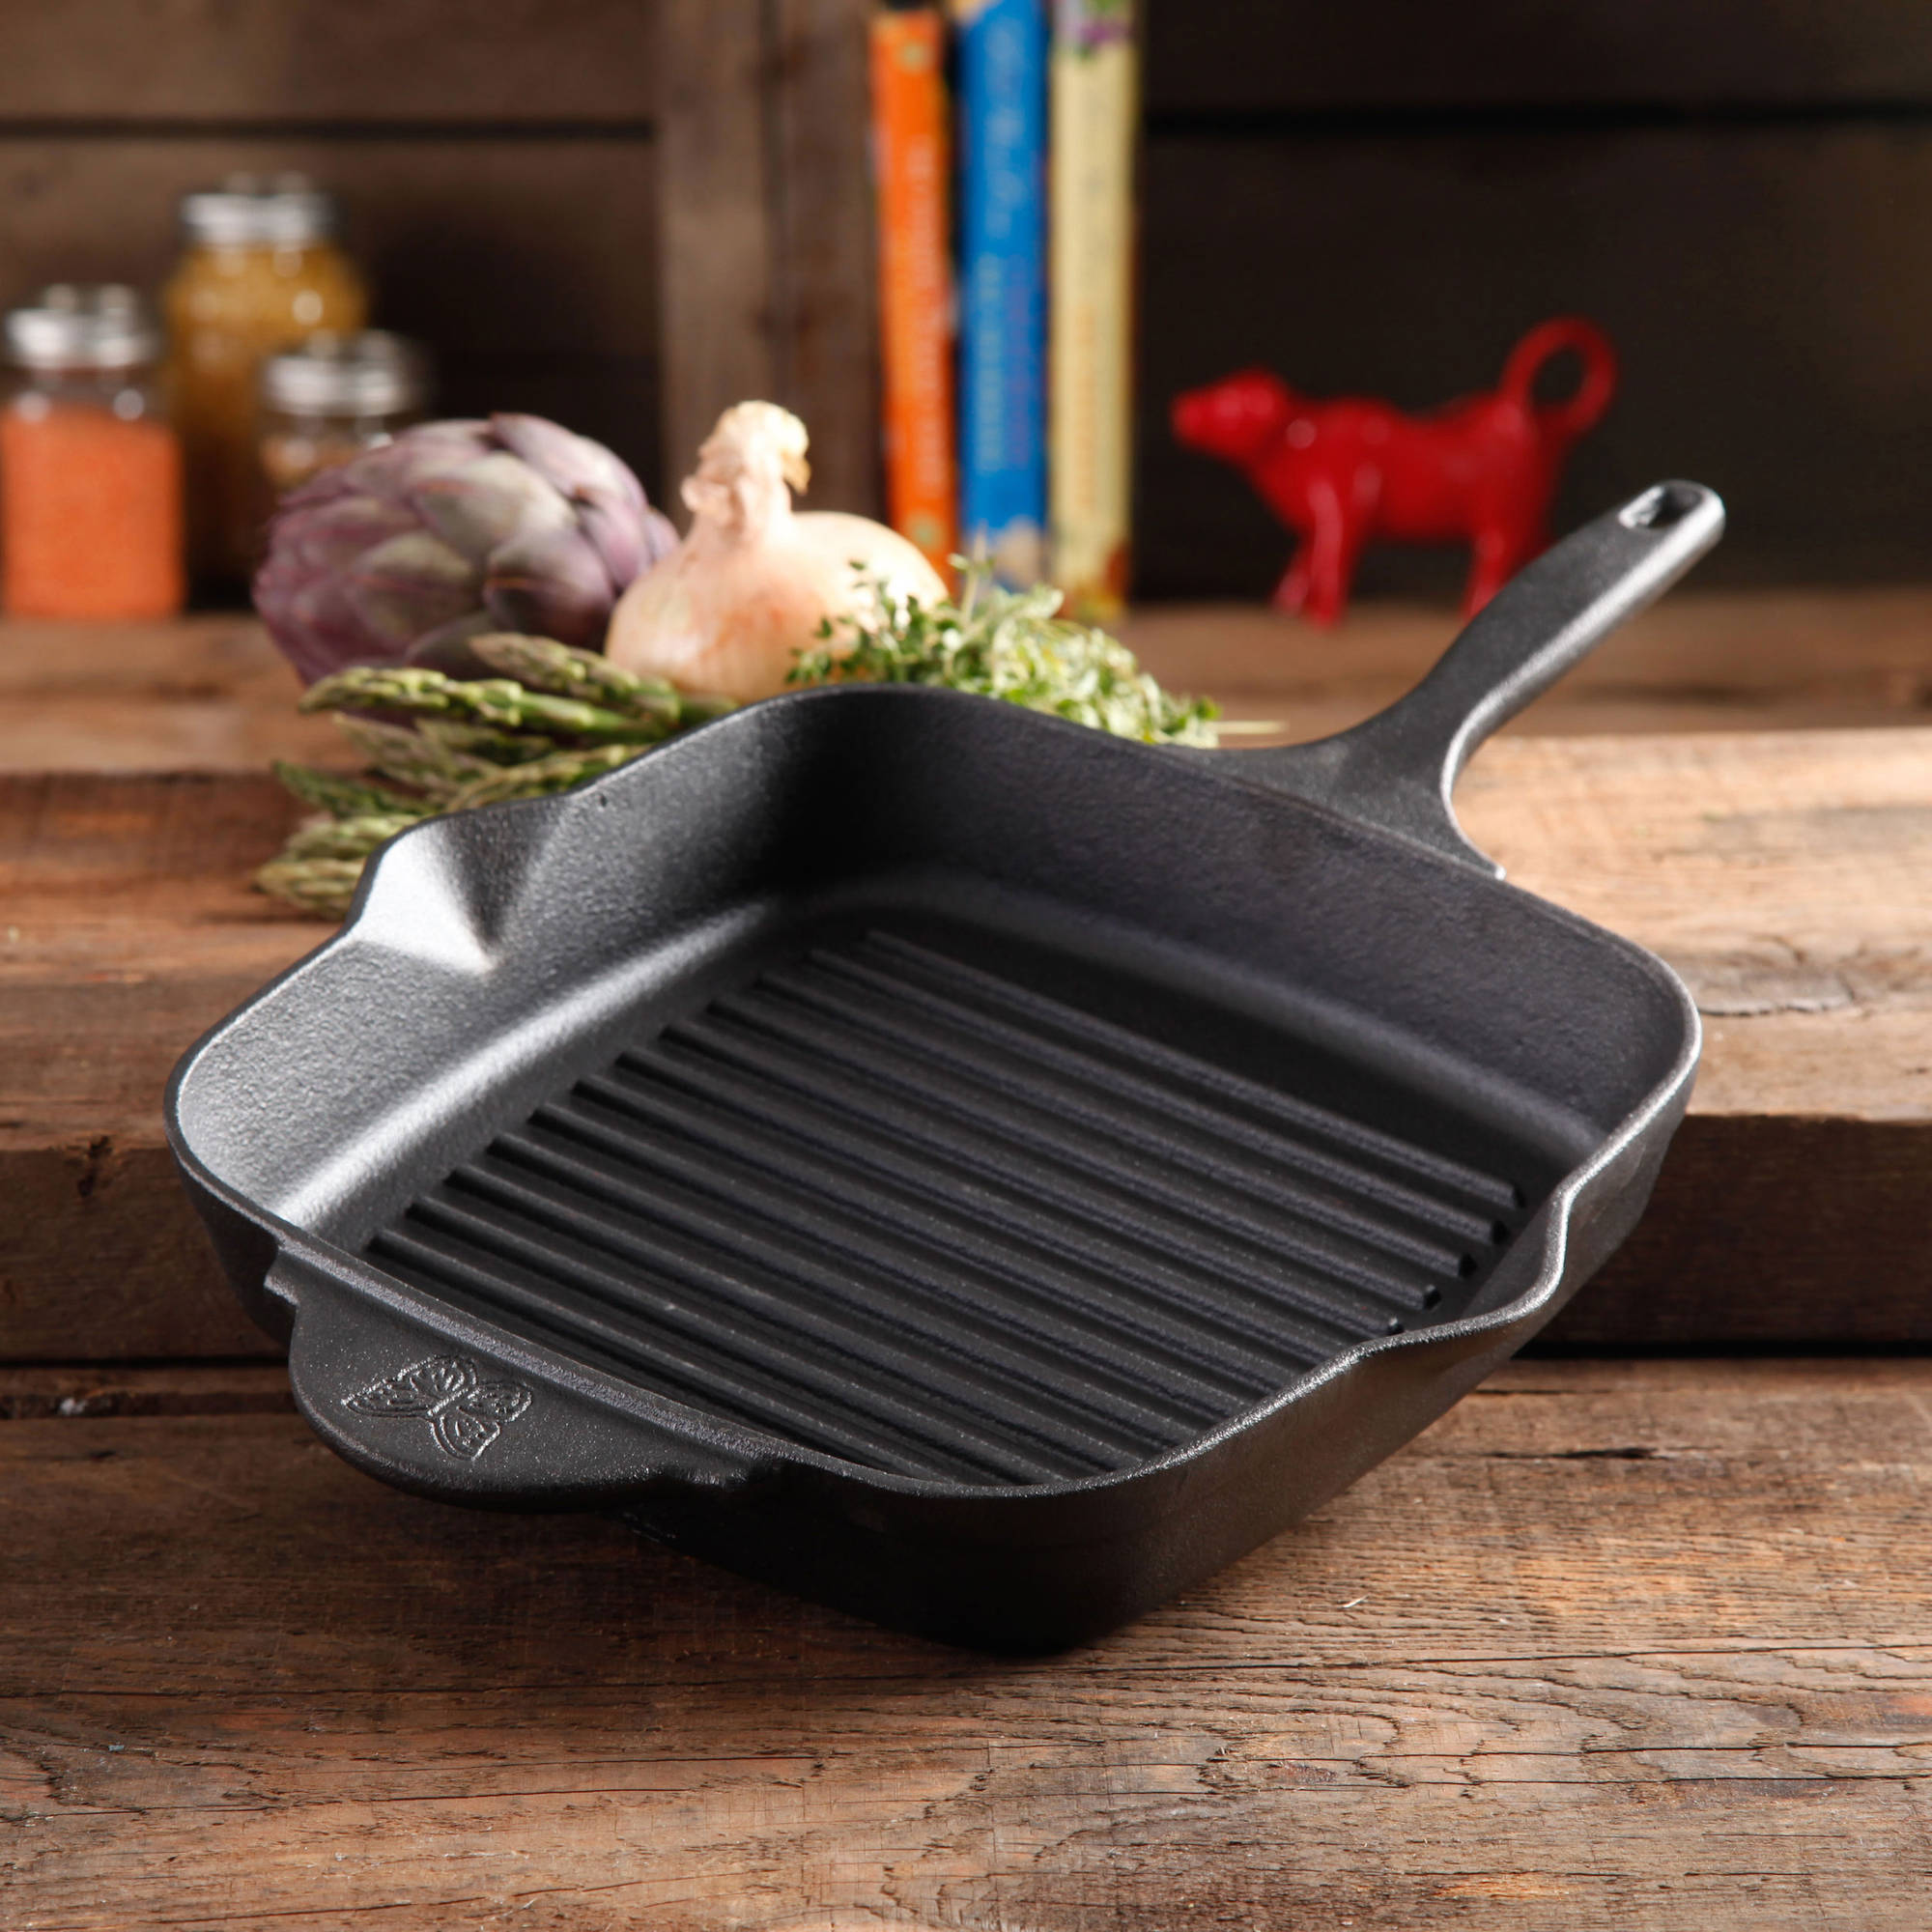 "The Pioneer Woman Timeless Cast Iron Square 10.25"" Pre-Seasoned Cast Iron Grill Pan"